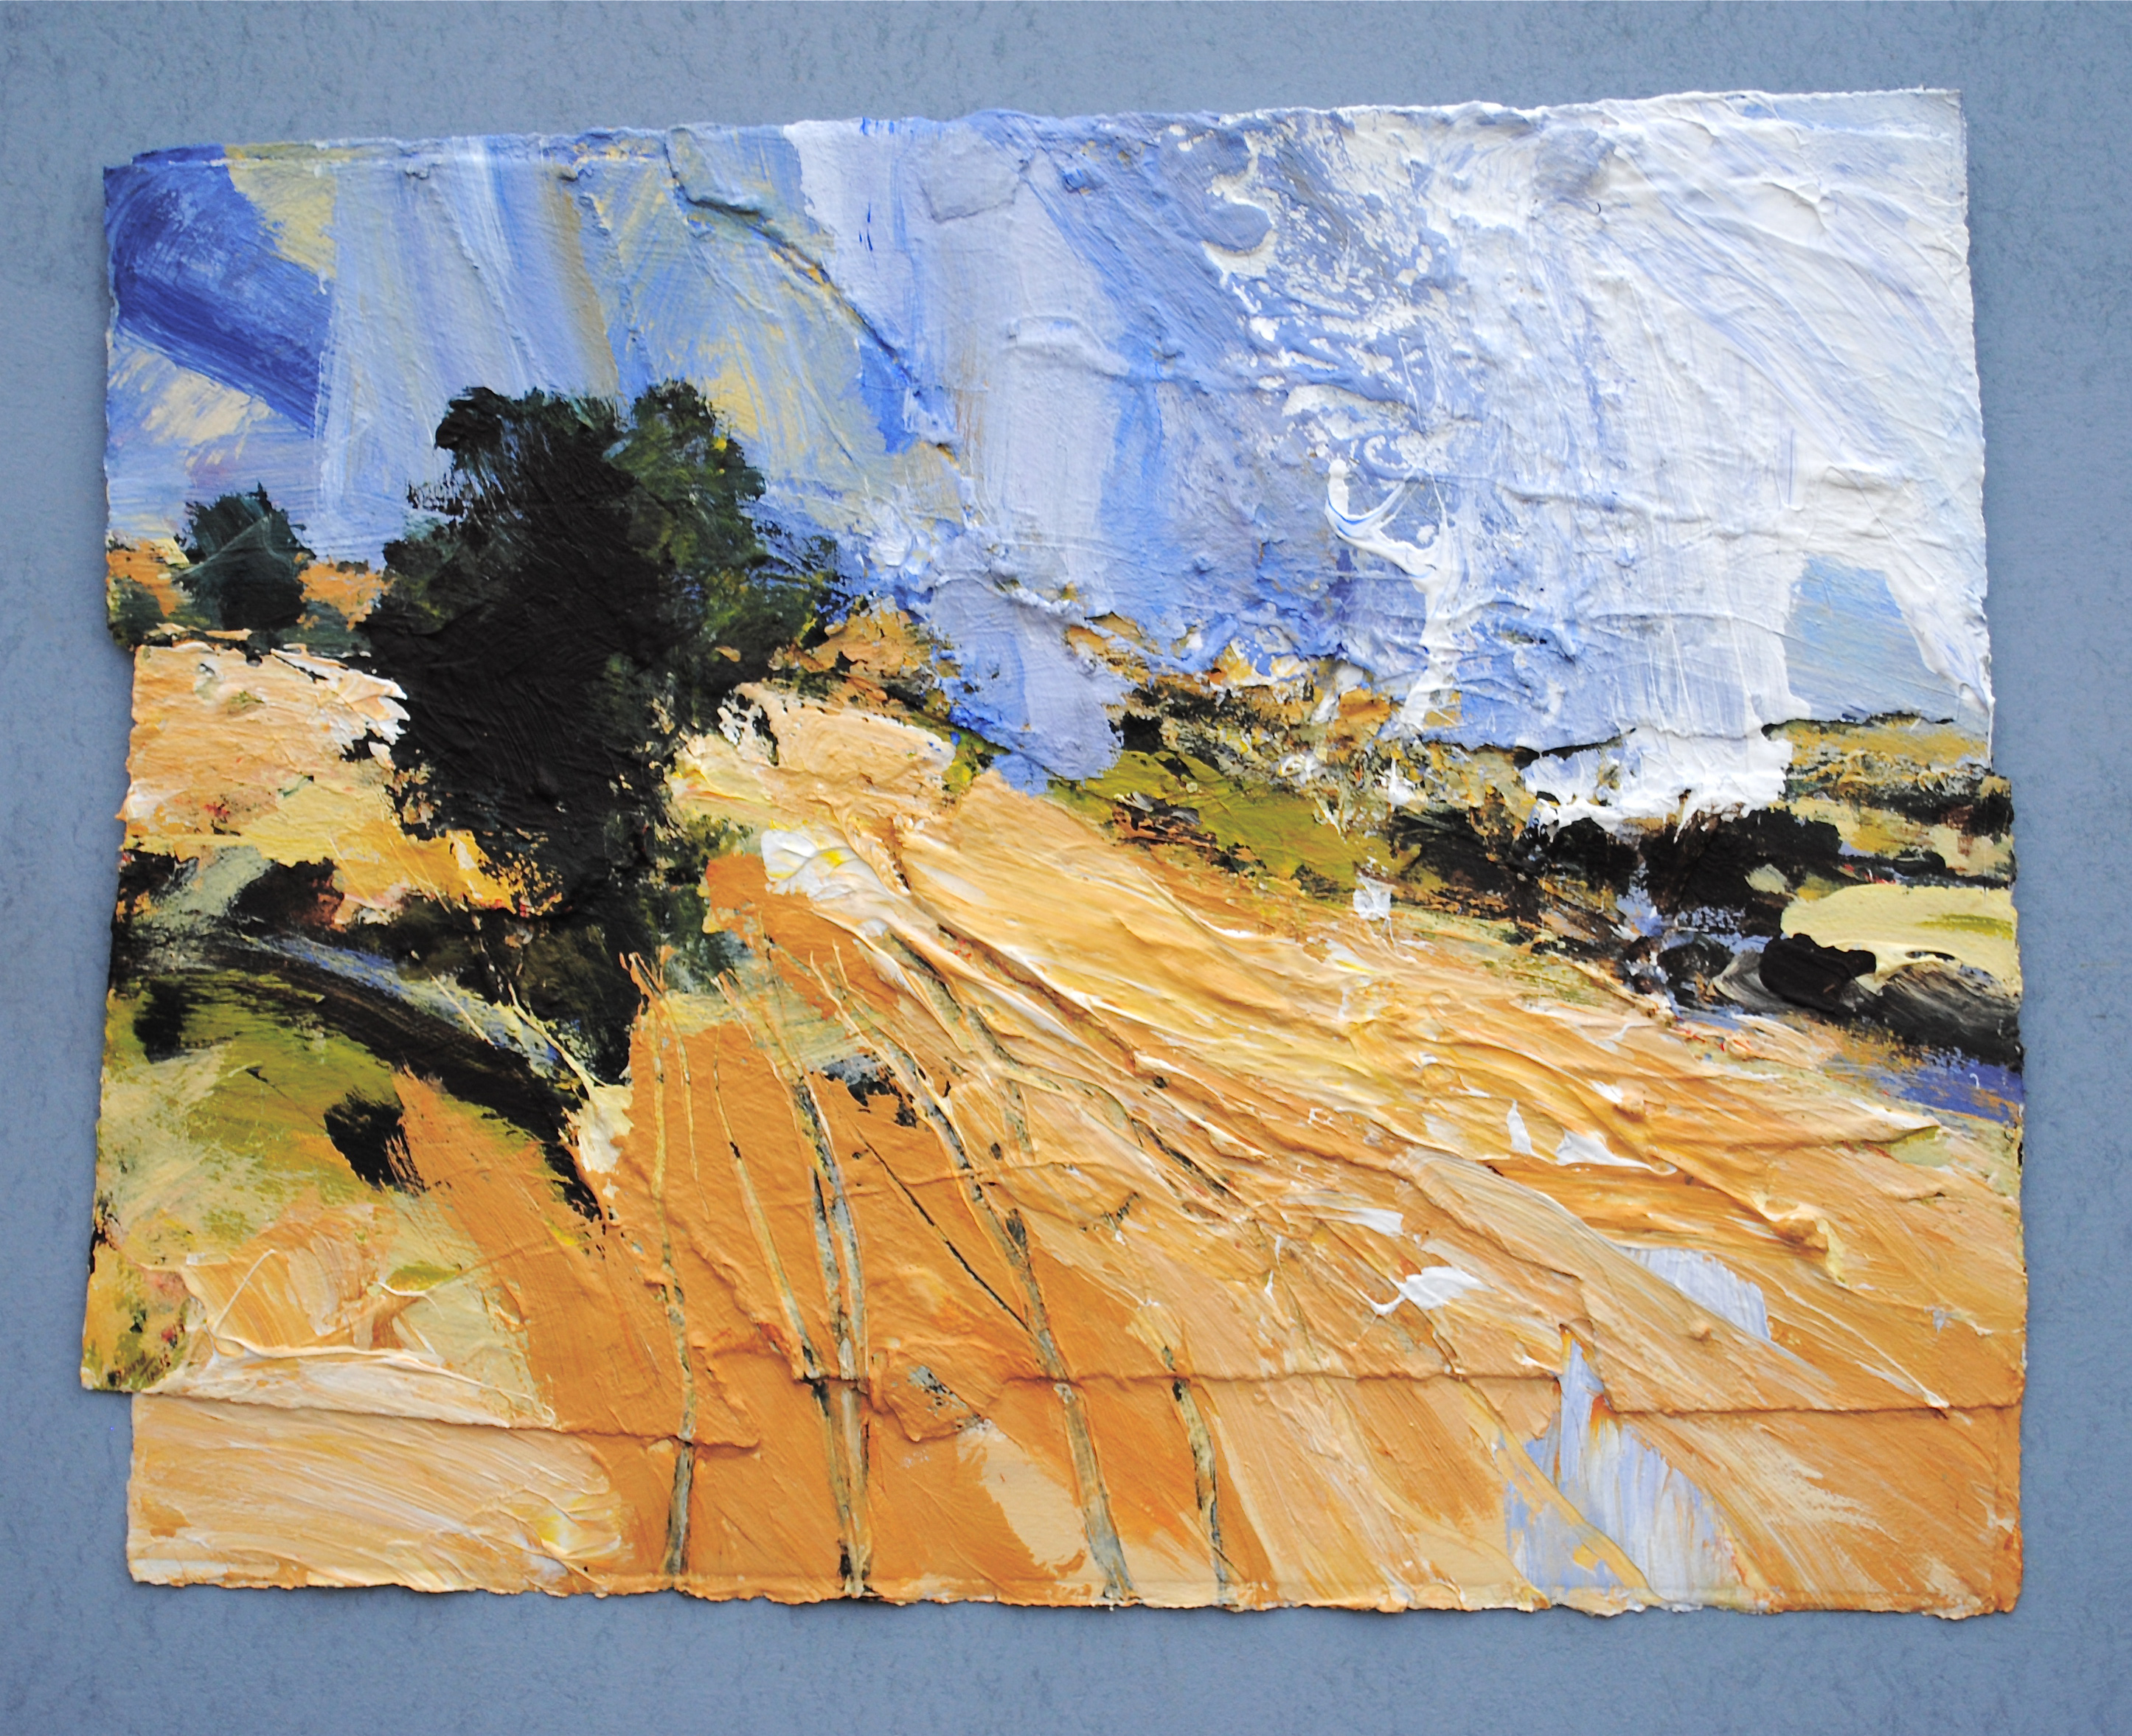 David-Tress-English-Harvest-Landscape-II-mixed-media-on-paper-48x61cm-2015